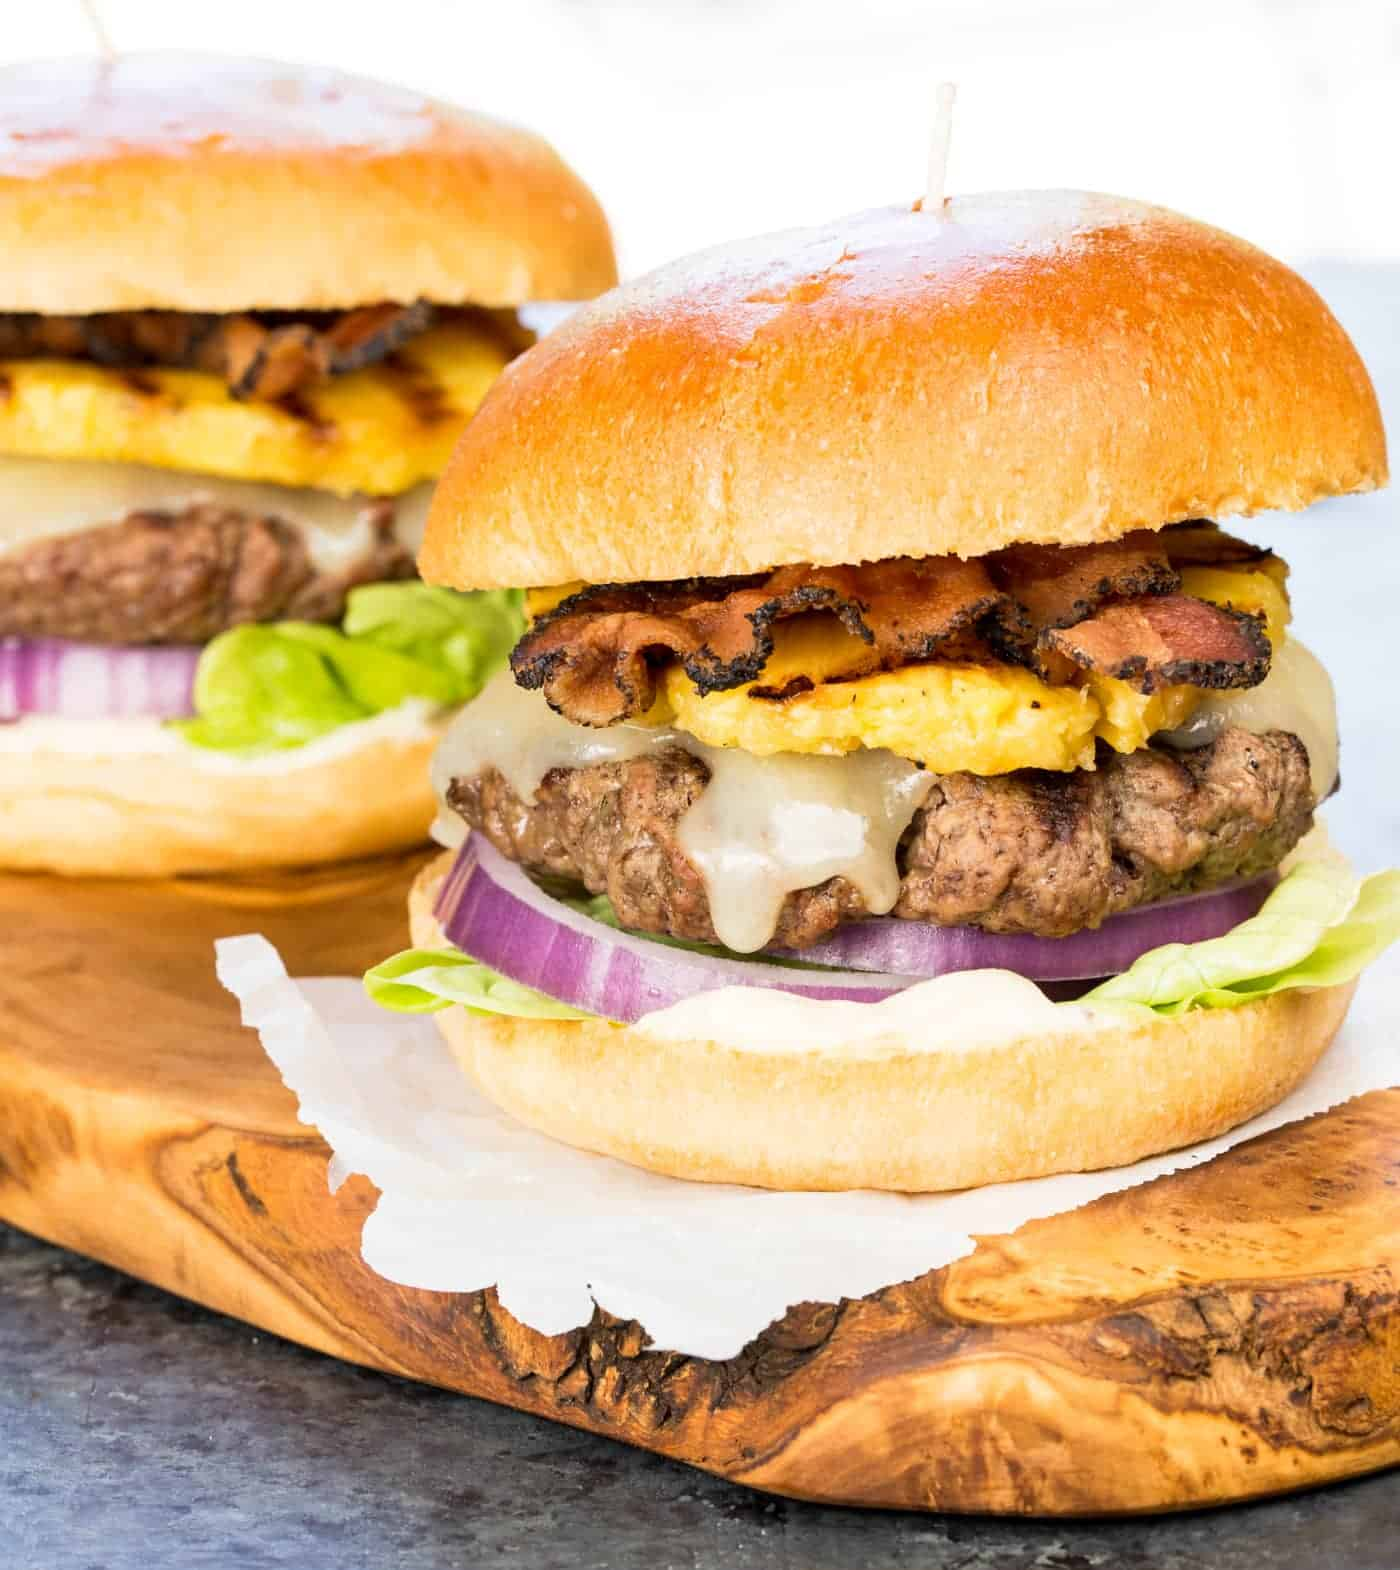 Image of two Sweet and Spicy Hawaiian Burgers on a wooden cutting board.